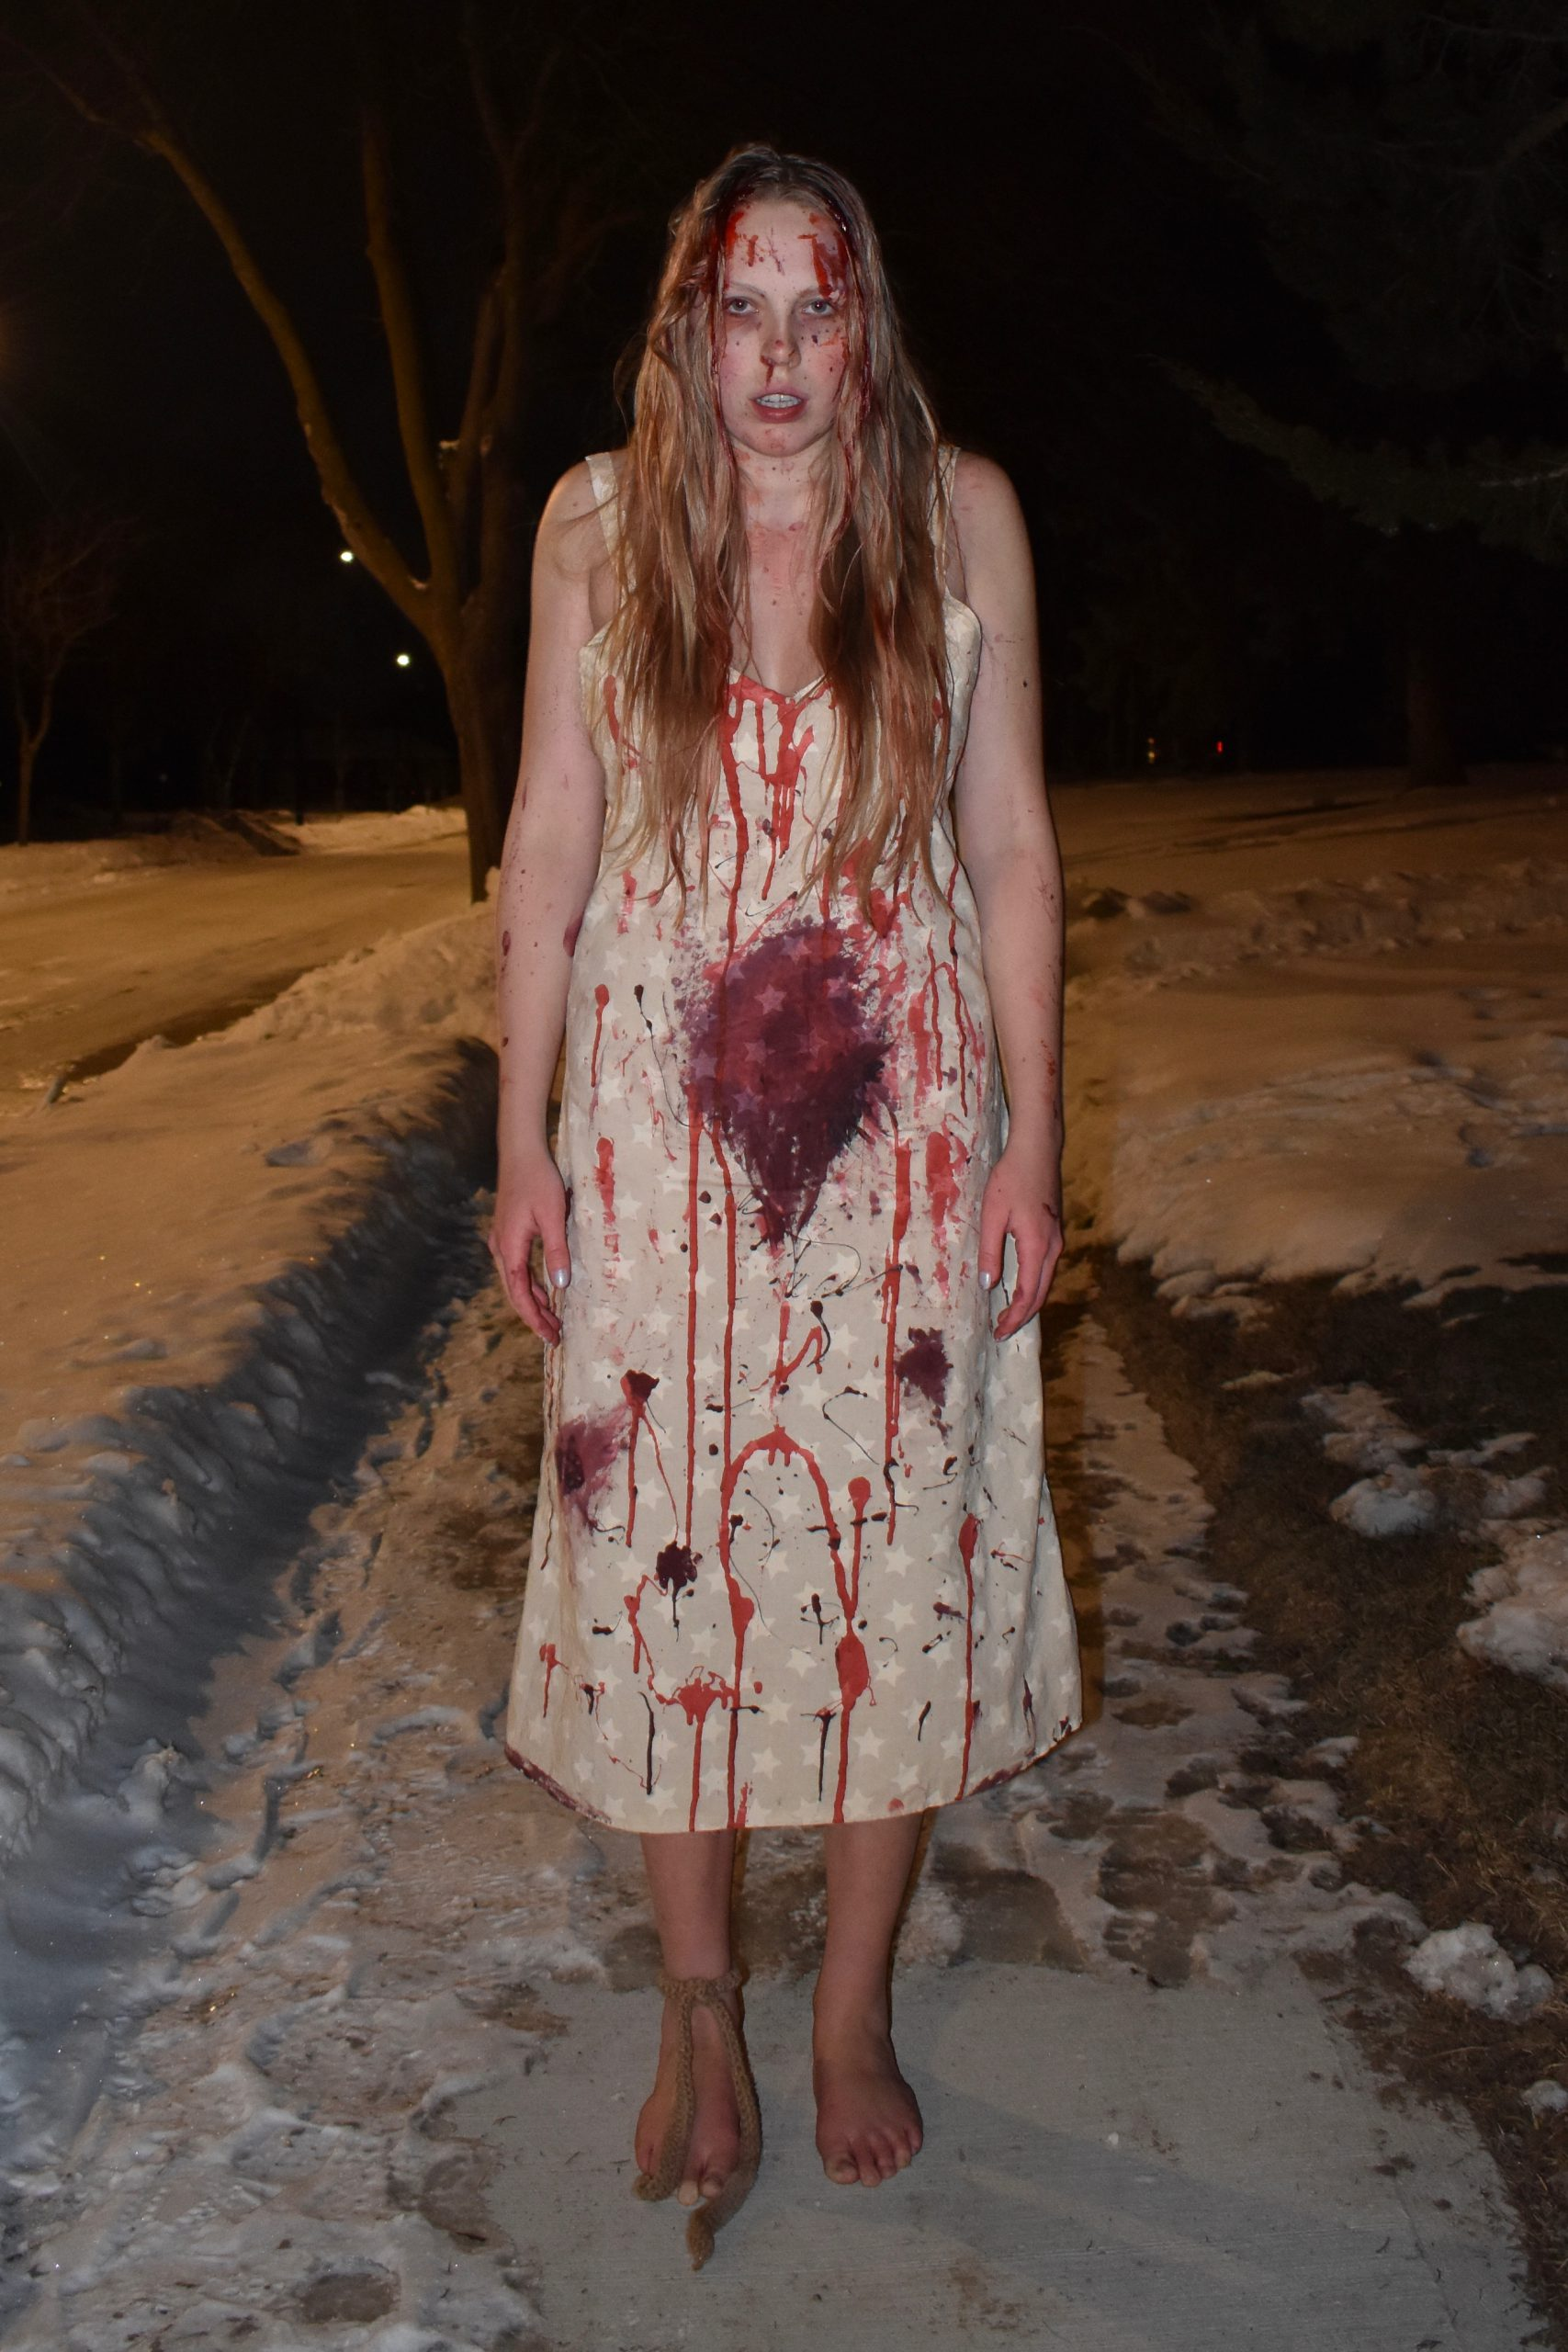 Gone Girl Dress Special Effects Image 1